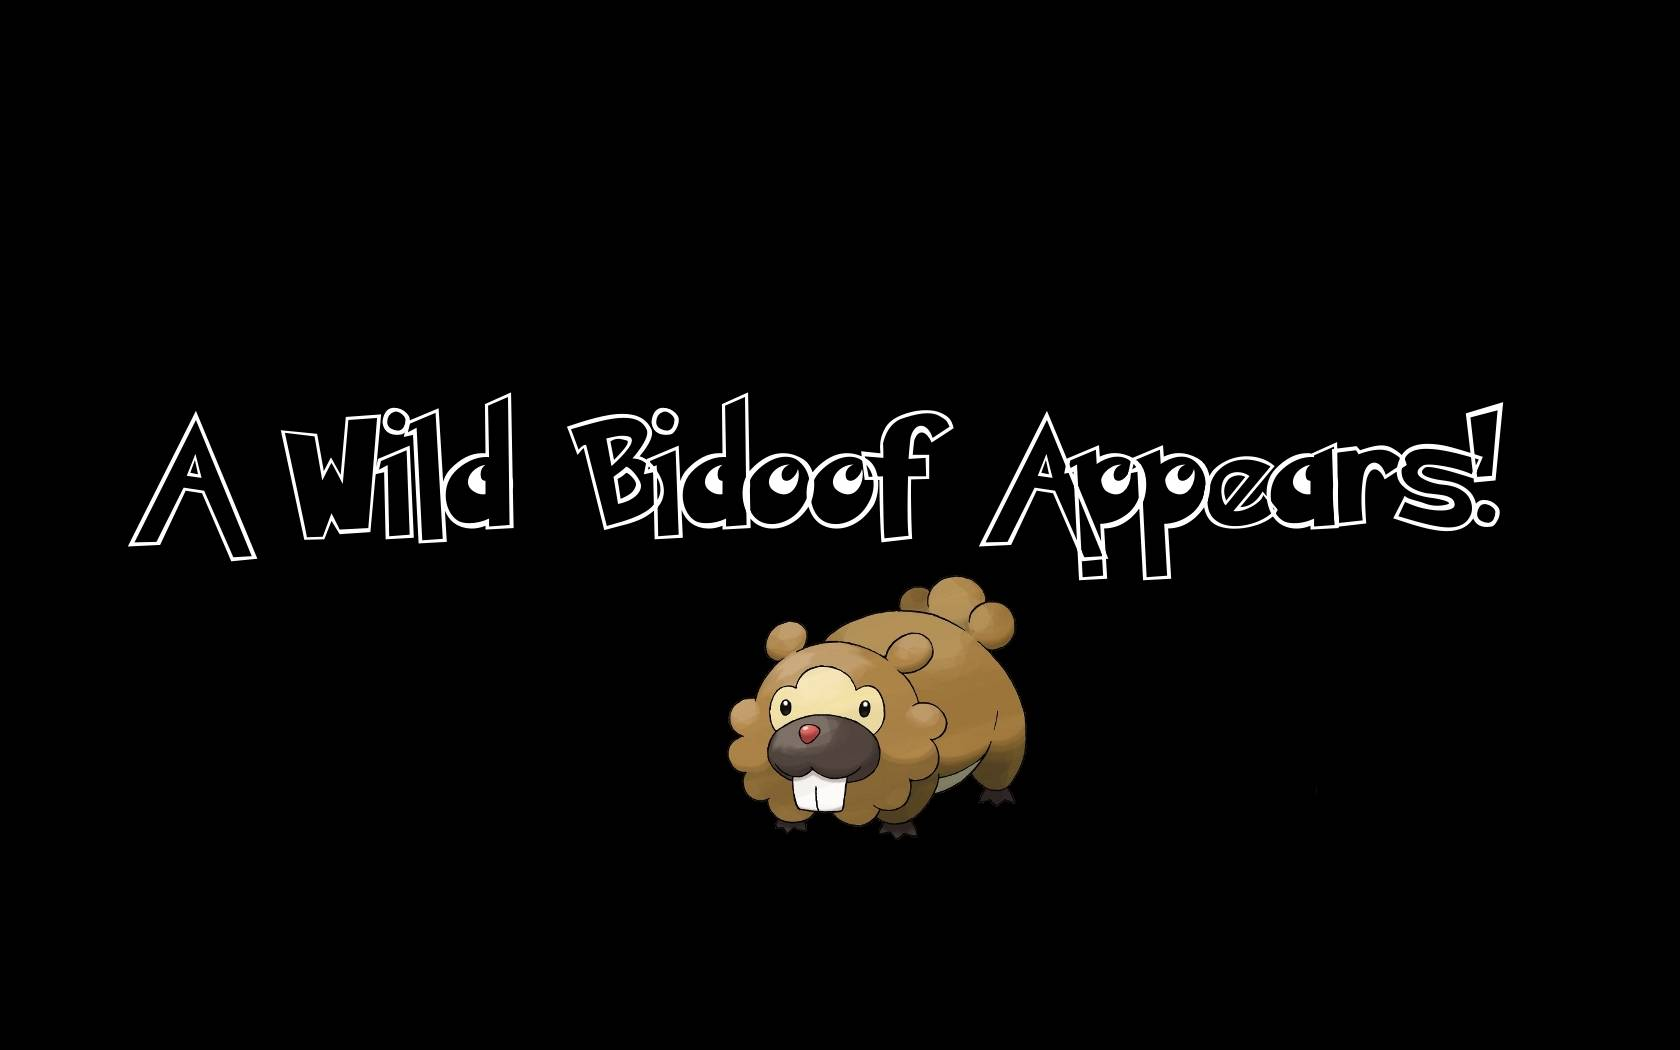 A-wild-bidoof-appears.jpg - Pokemon Wallpaper